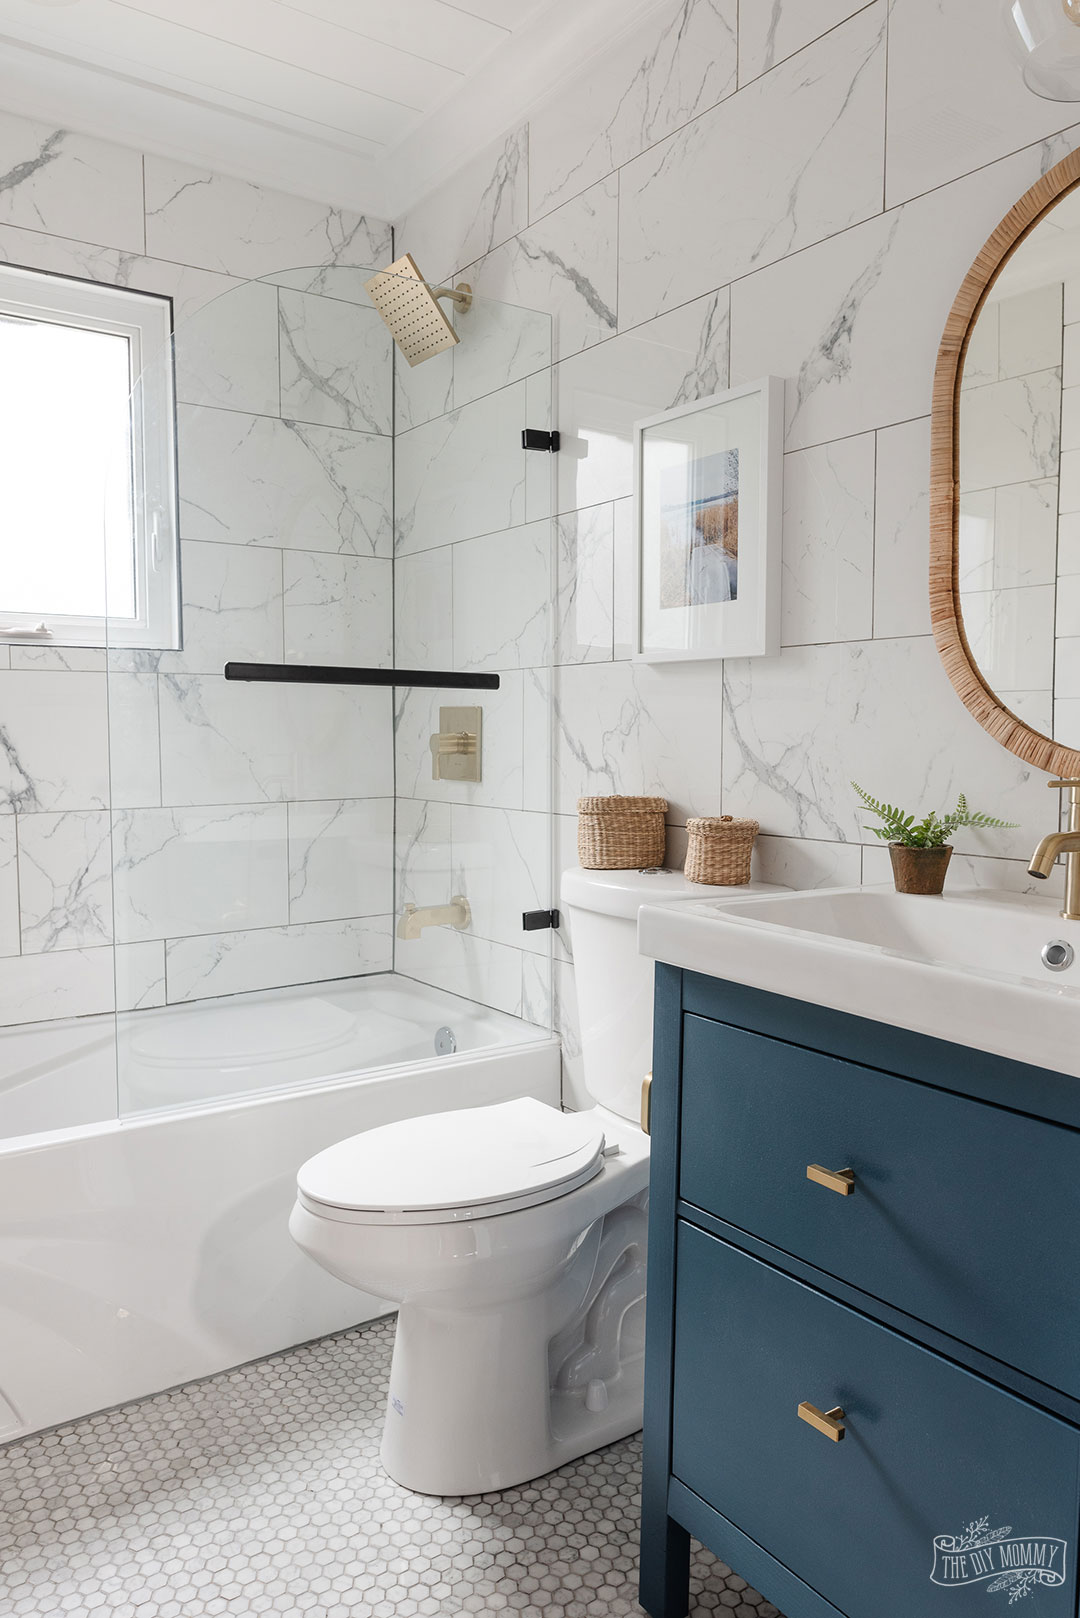 Modern coastal inspired bathroom renovation with marble tile, shiplap, gold and black accessories, clear shower door, blue and white colors & rattan accents